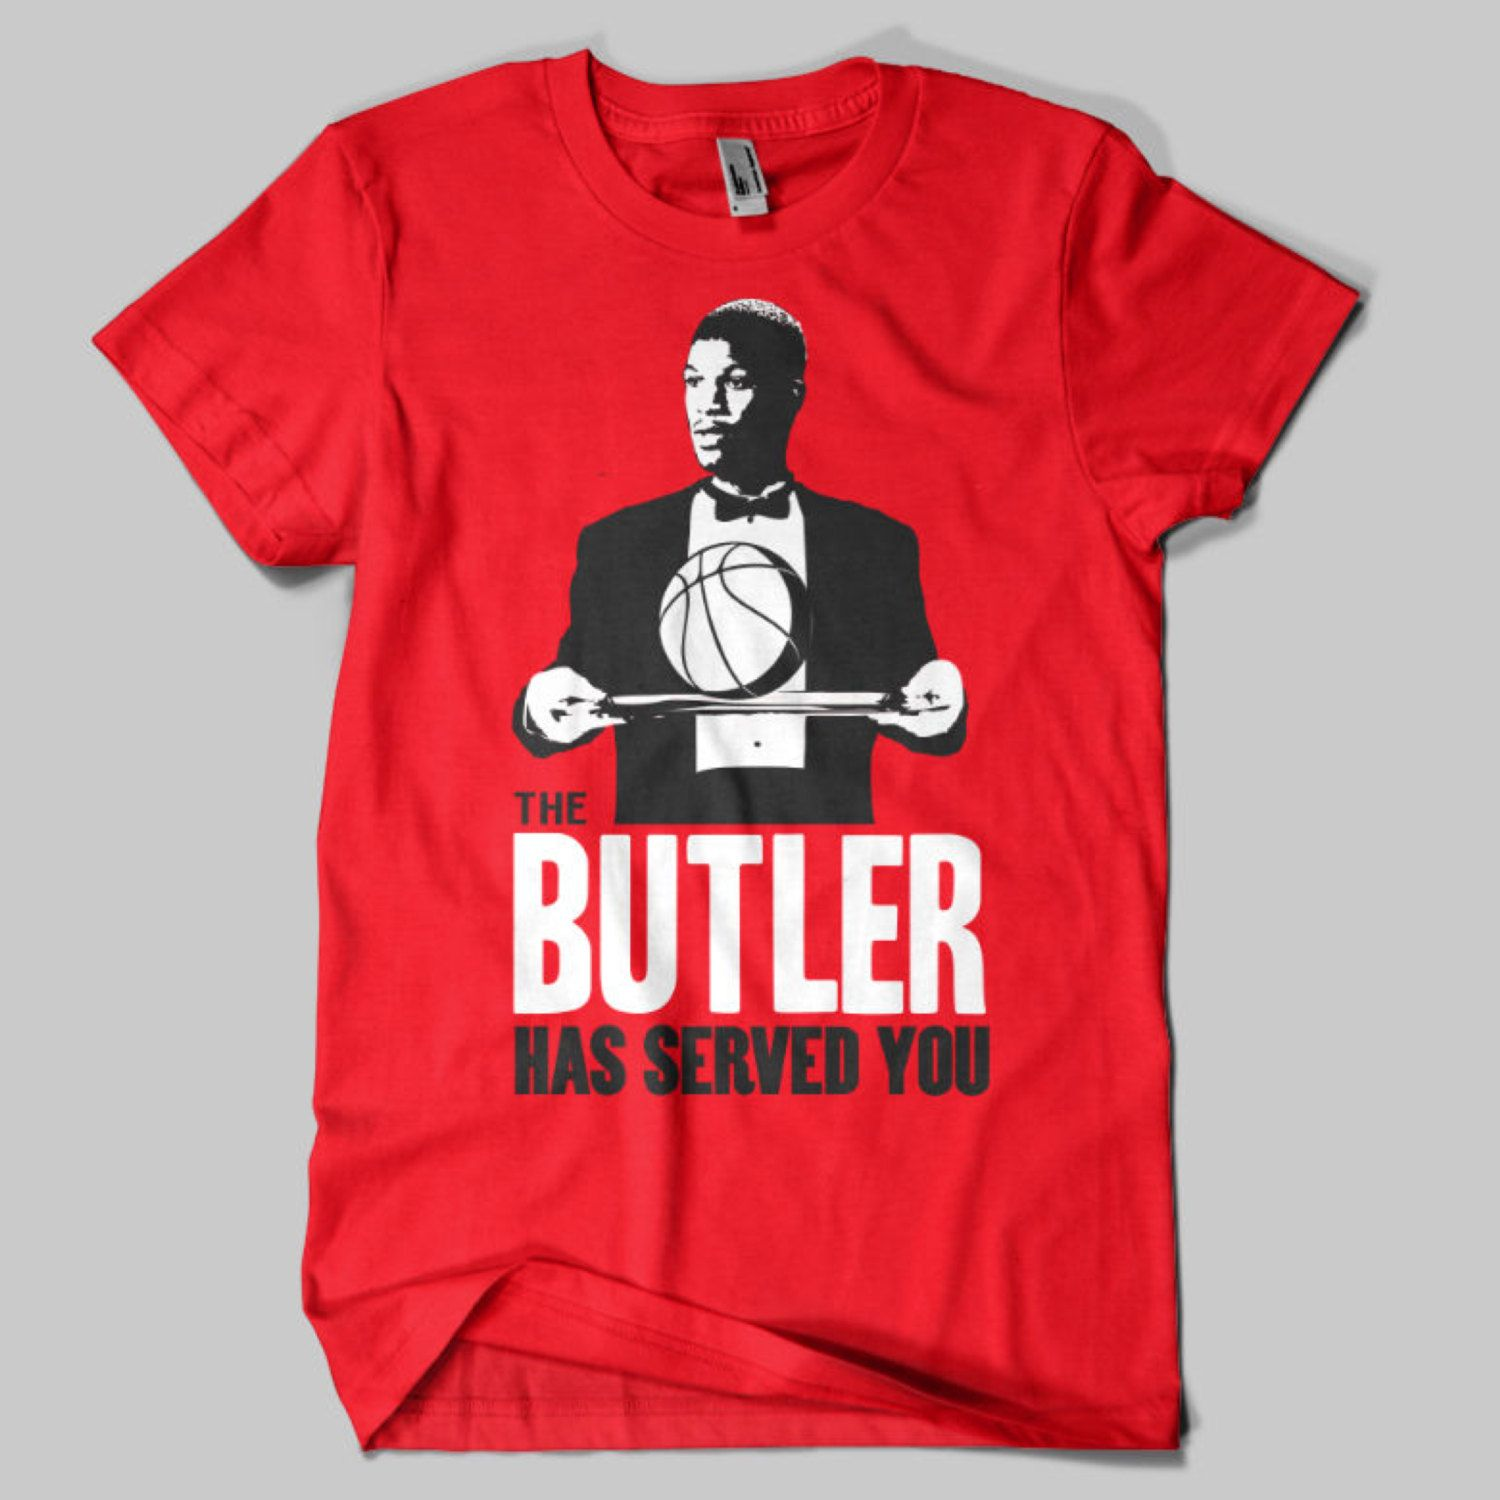 from MU to the Bulls, love Jimmy Butler